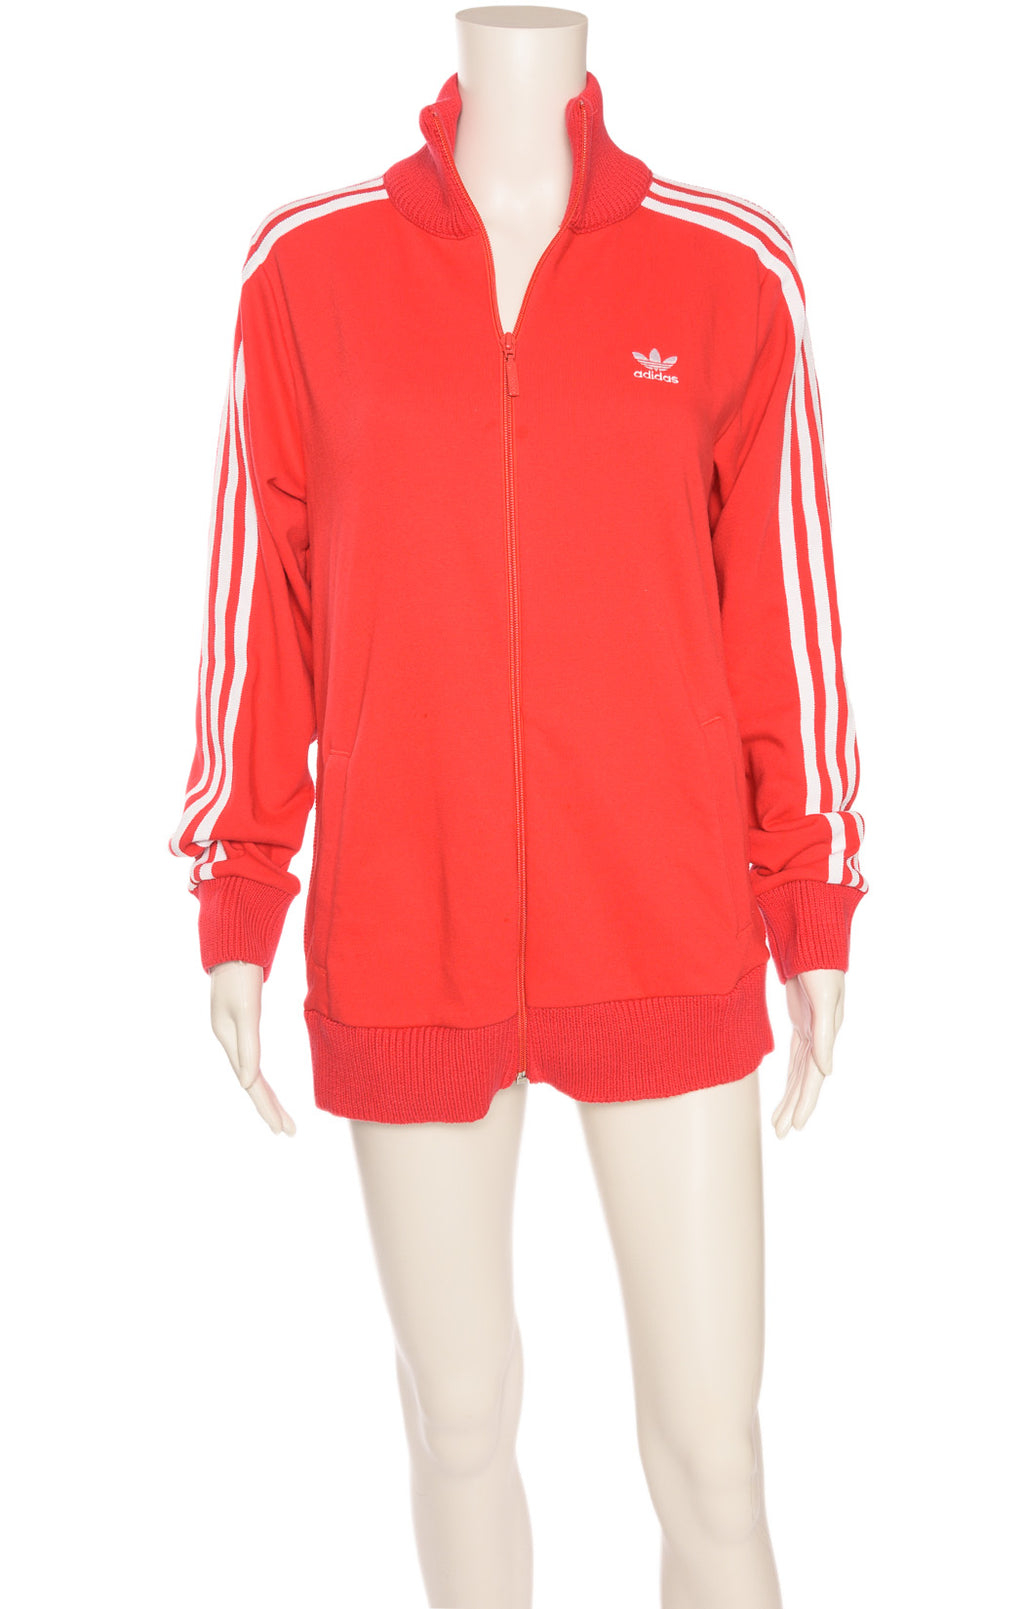 Front view of ADIDAS  Track jacket Size: Medium